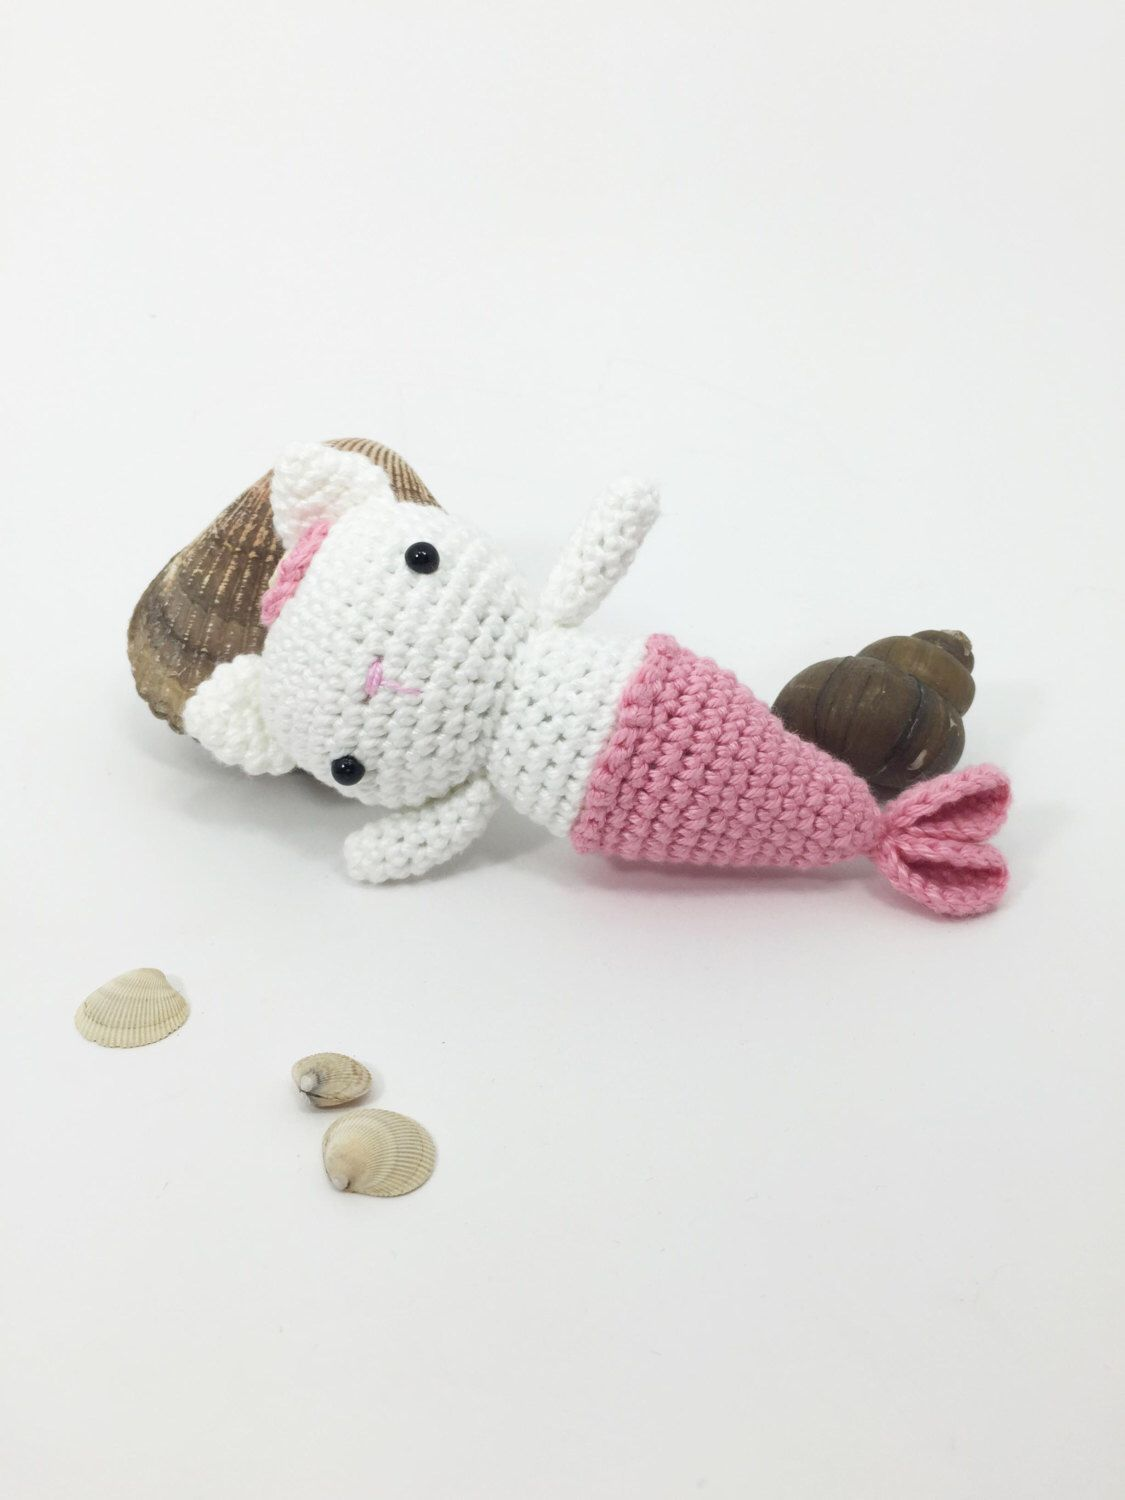 Amigurumi Mermaid Cat, Little Crochet Animal, Stuffed Cat, Amigurumi Cat Doll, Crochet Cat Me... Am